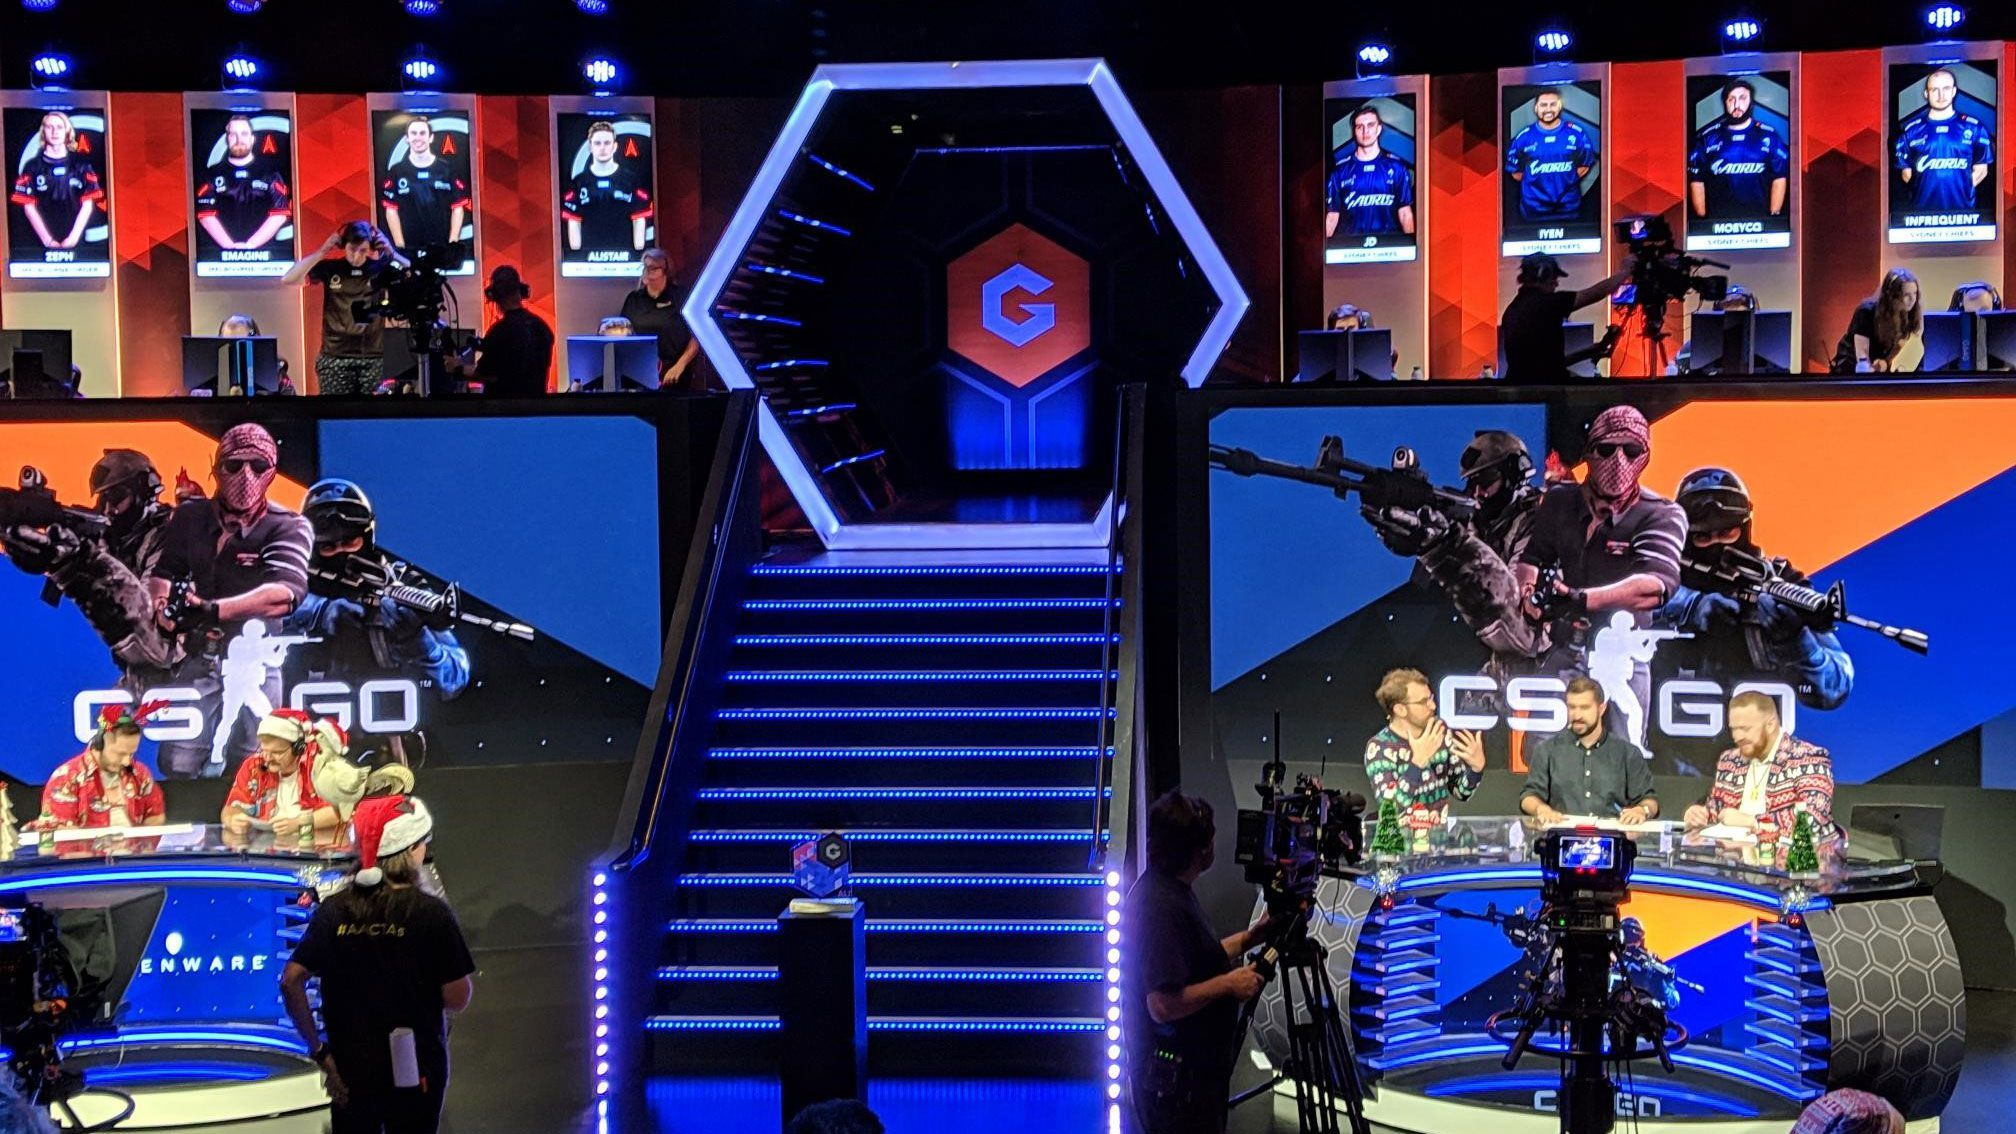 The Gfinity Elite Series